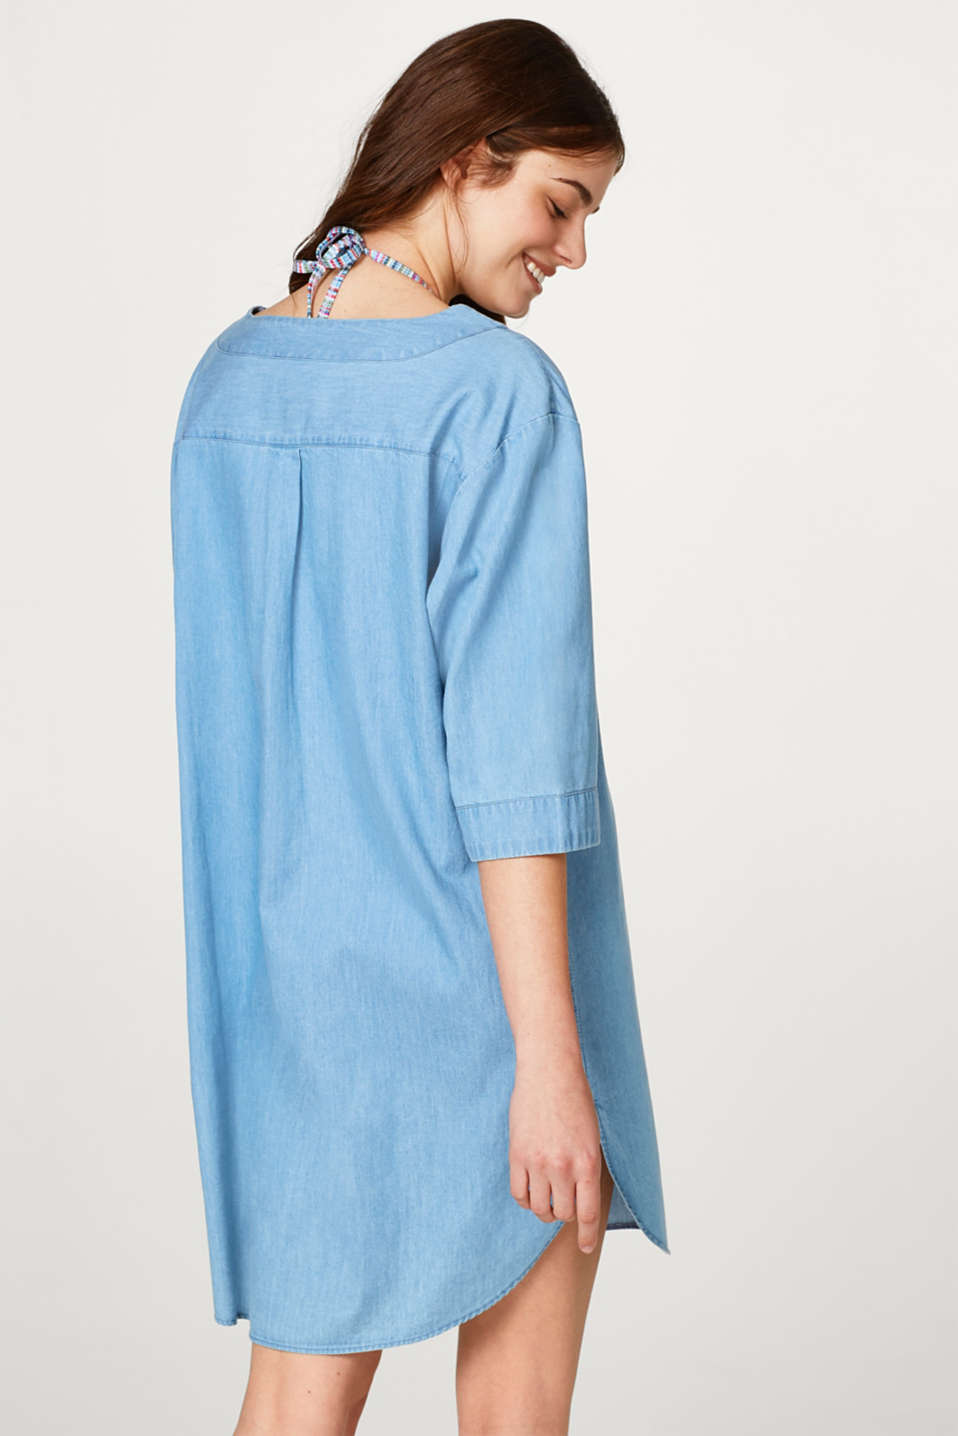 Tunic dress in cotton denim with embroidery